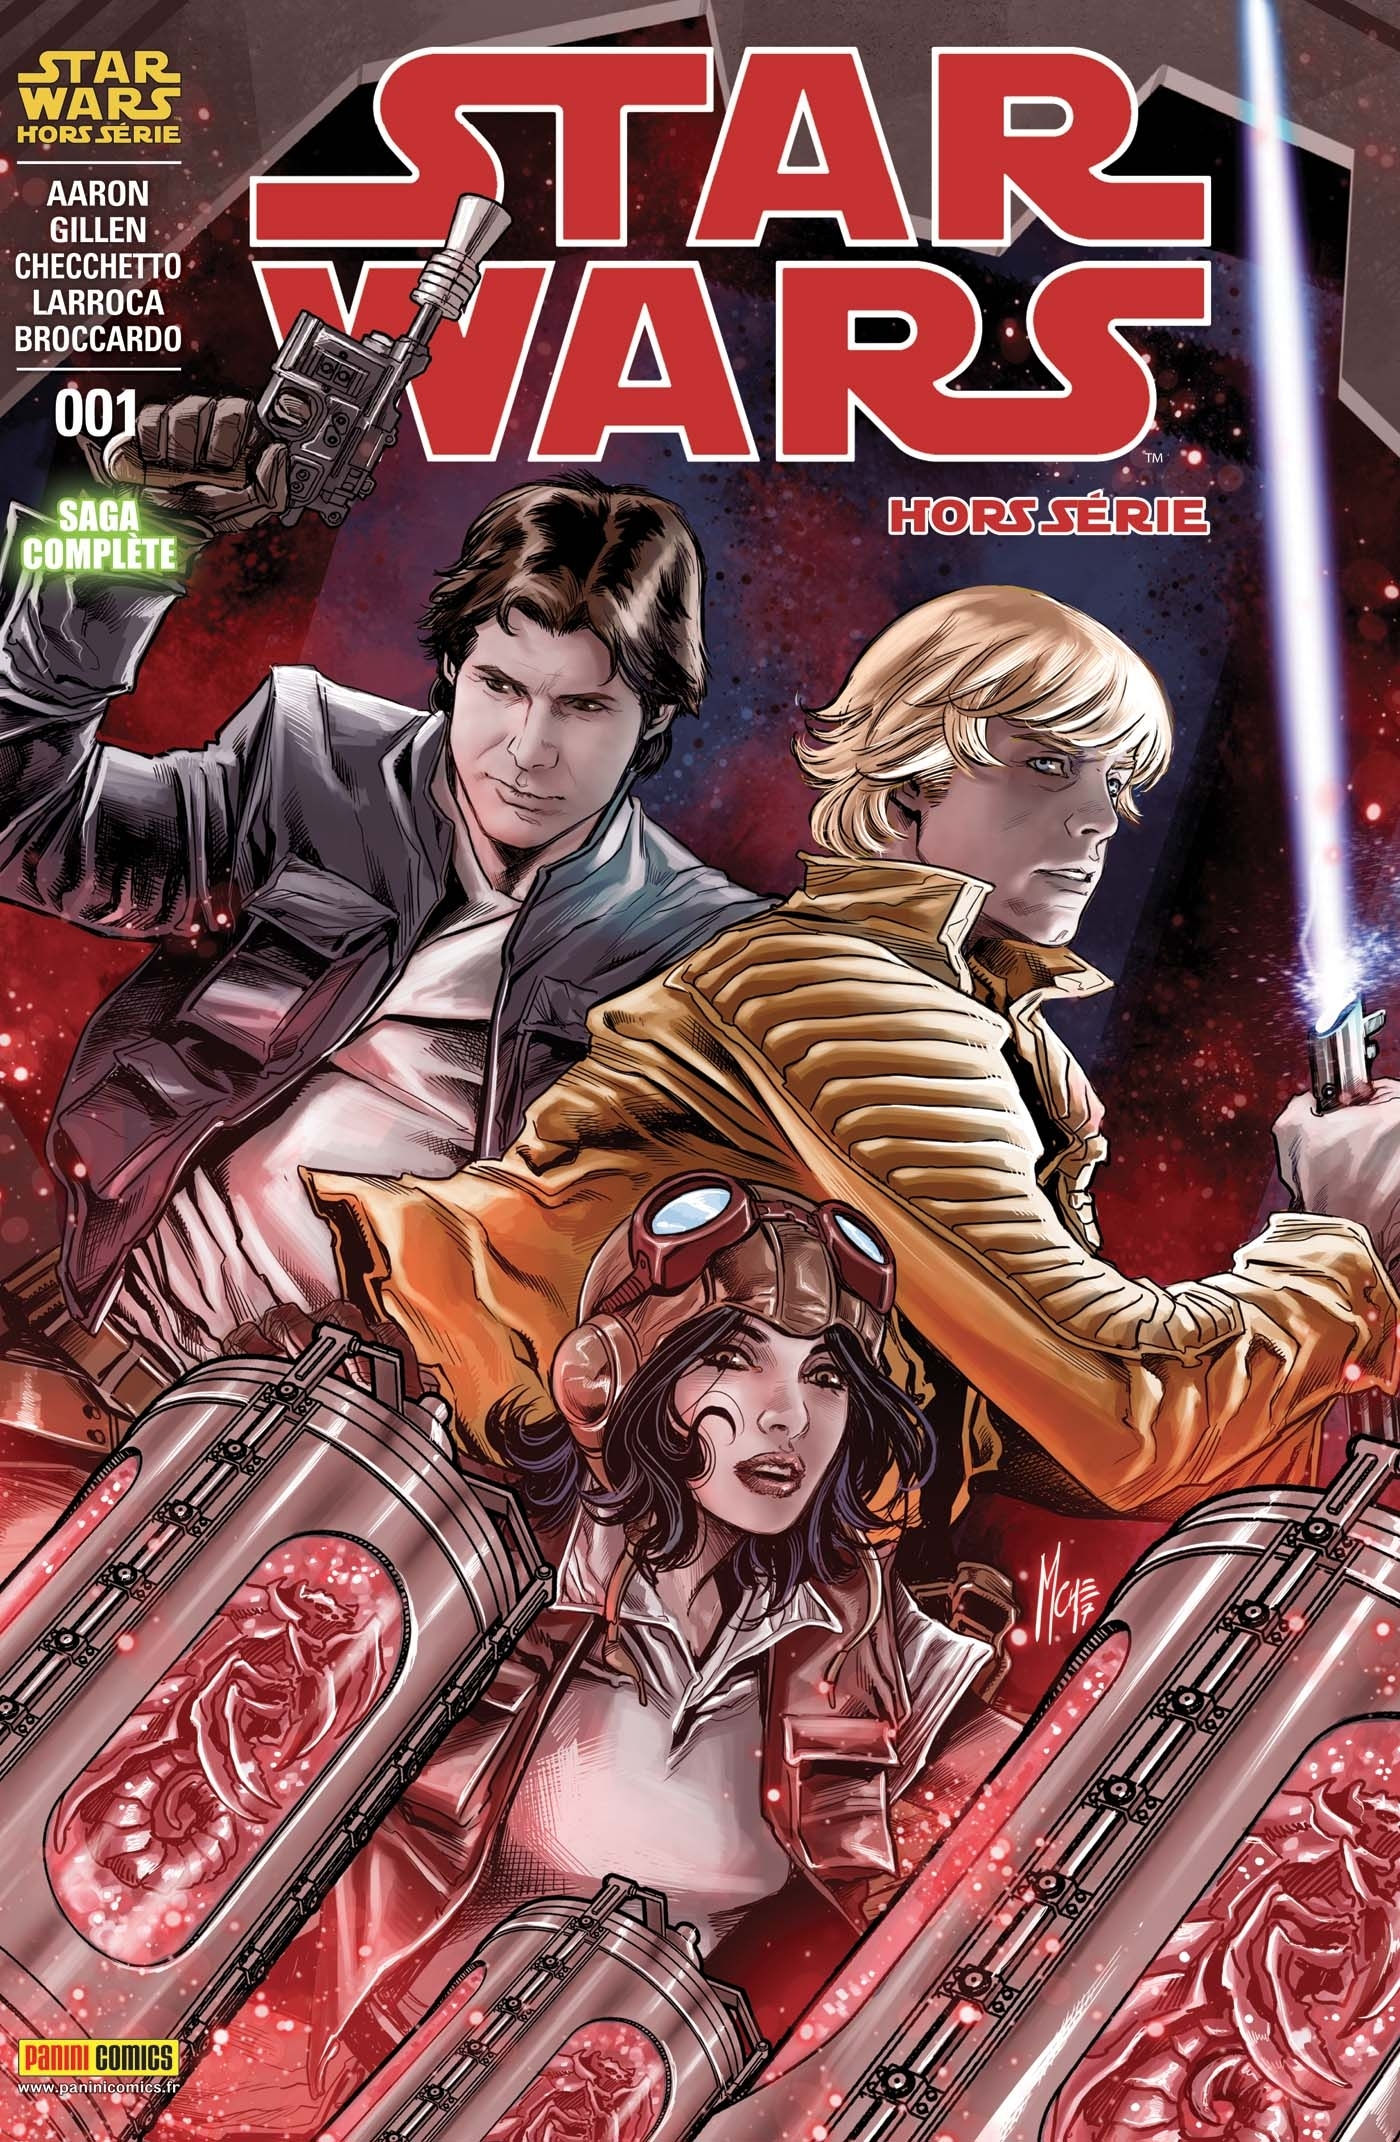 STAR WARS HS N 1 (COUVERTURE 1/2)